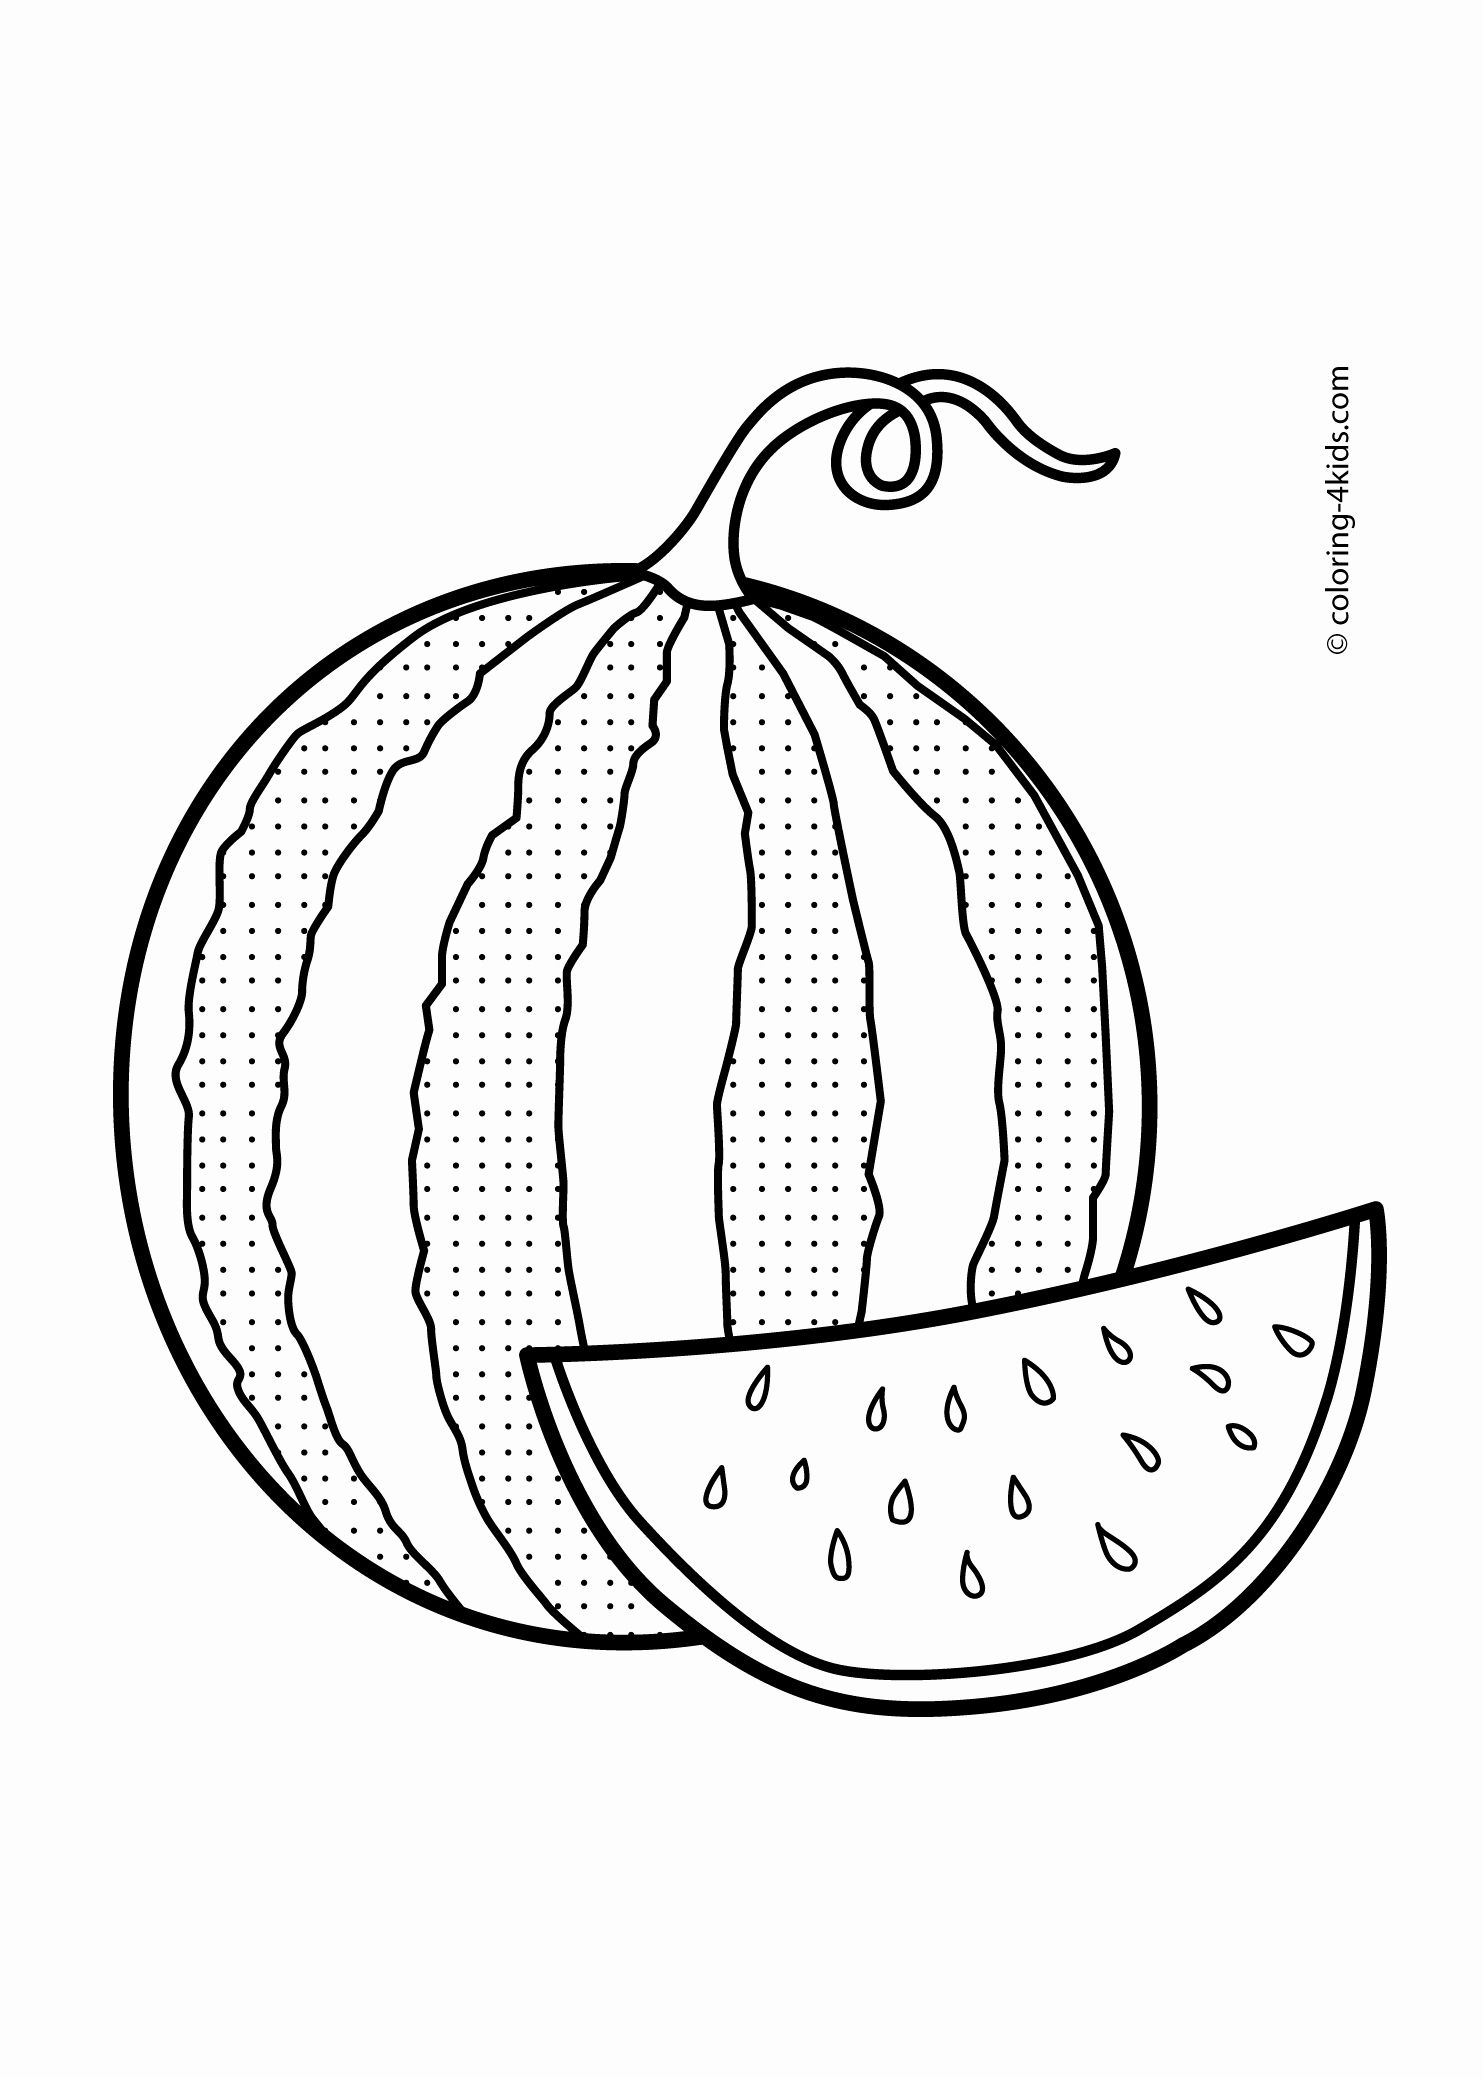 Coloring Pages Fruits And Veggies Awesome Fruit Coloring Pages